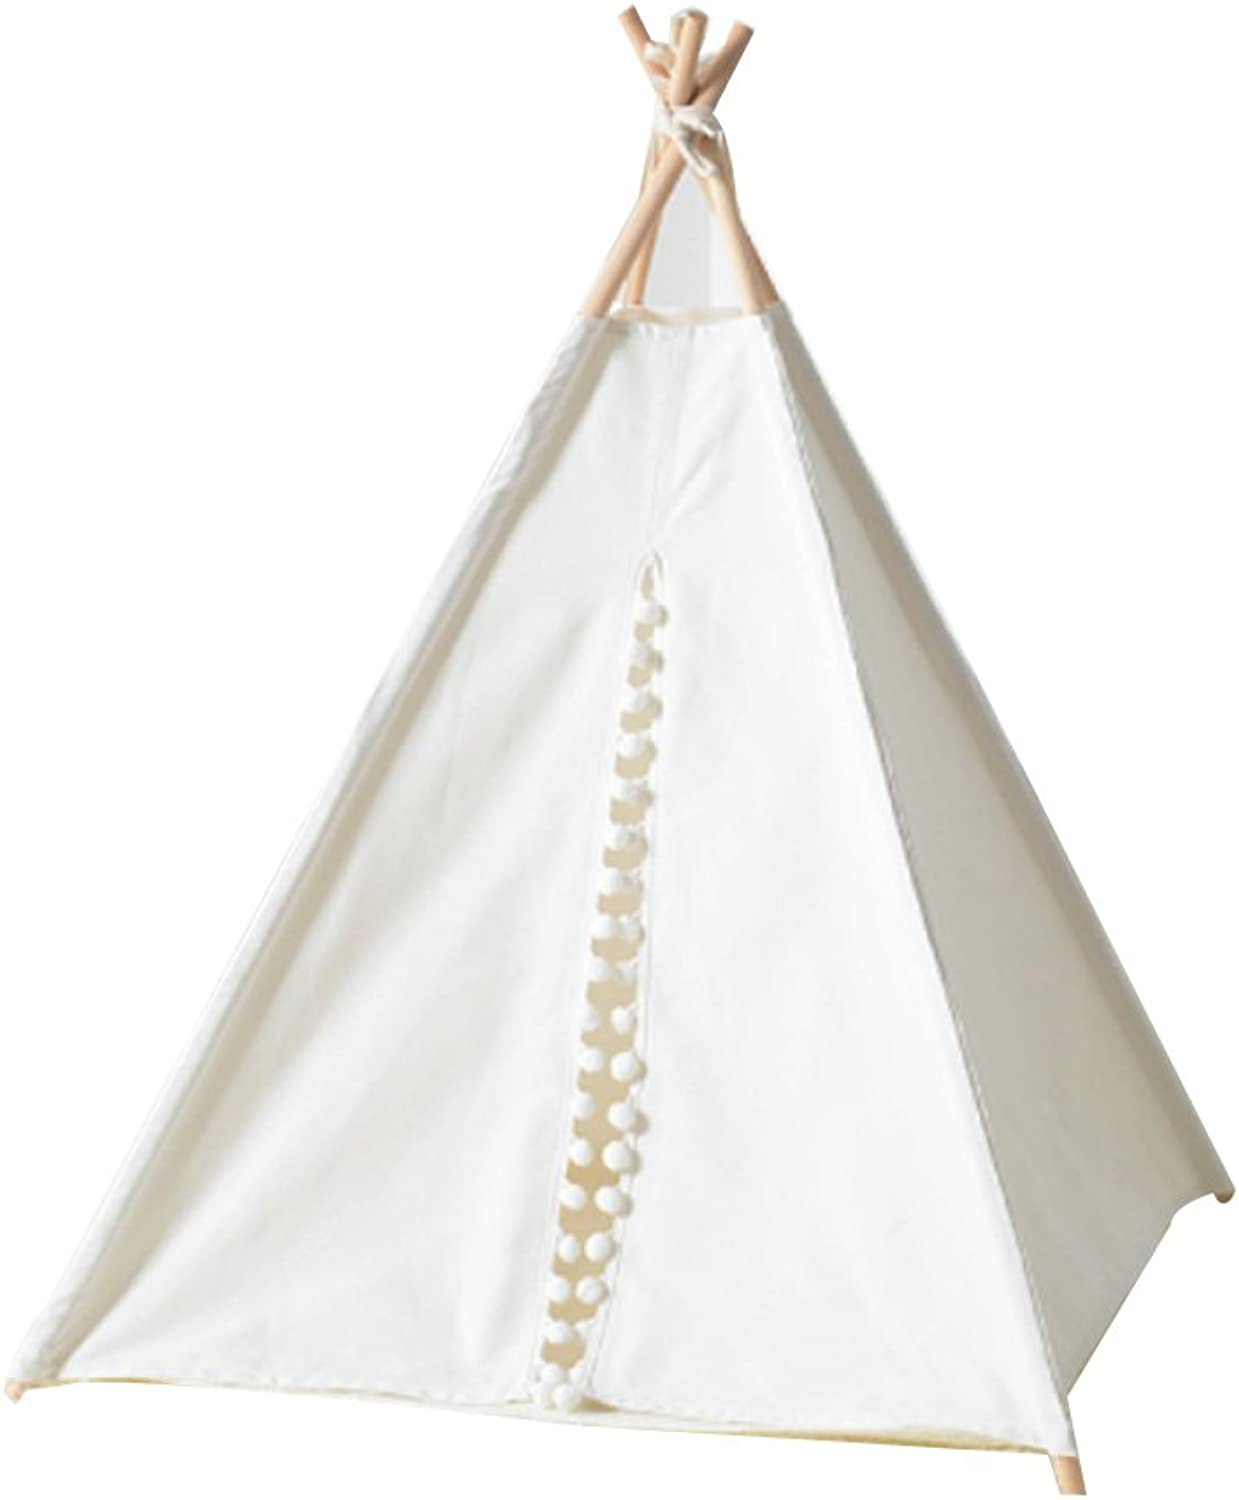 AYCC Pet Tents, Indoor And Outdoor Tents, 5 Loose Poles And Plain White Floor Mats, Removable, Foldable, 100% Cotton,S